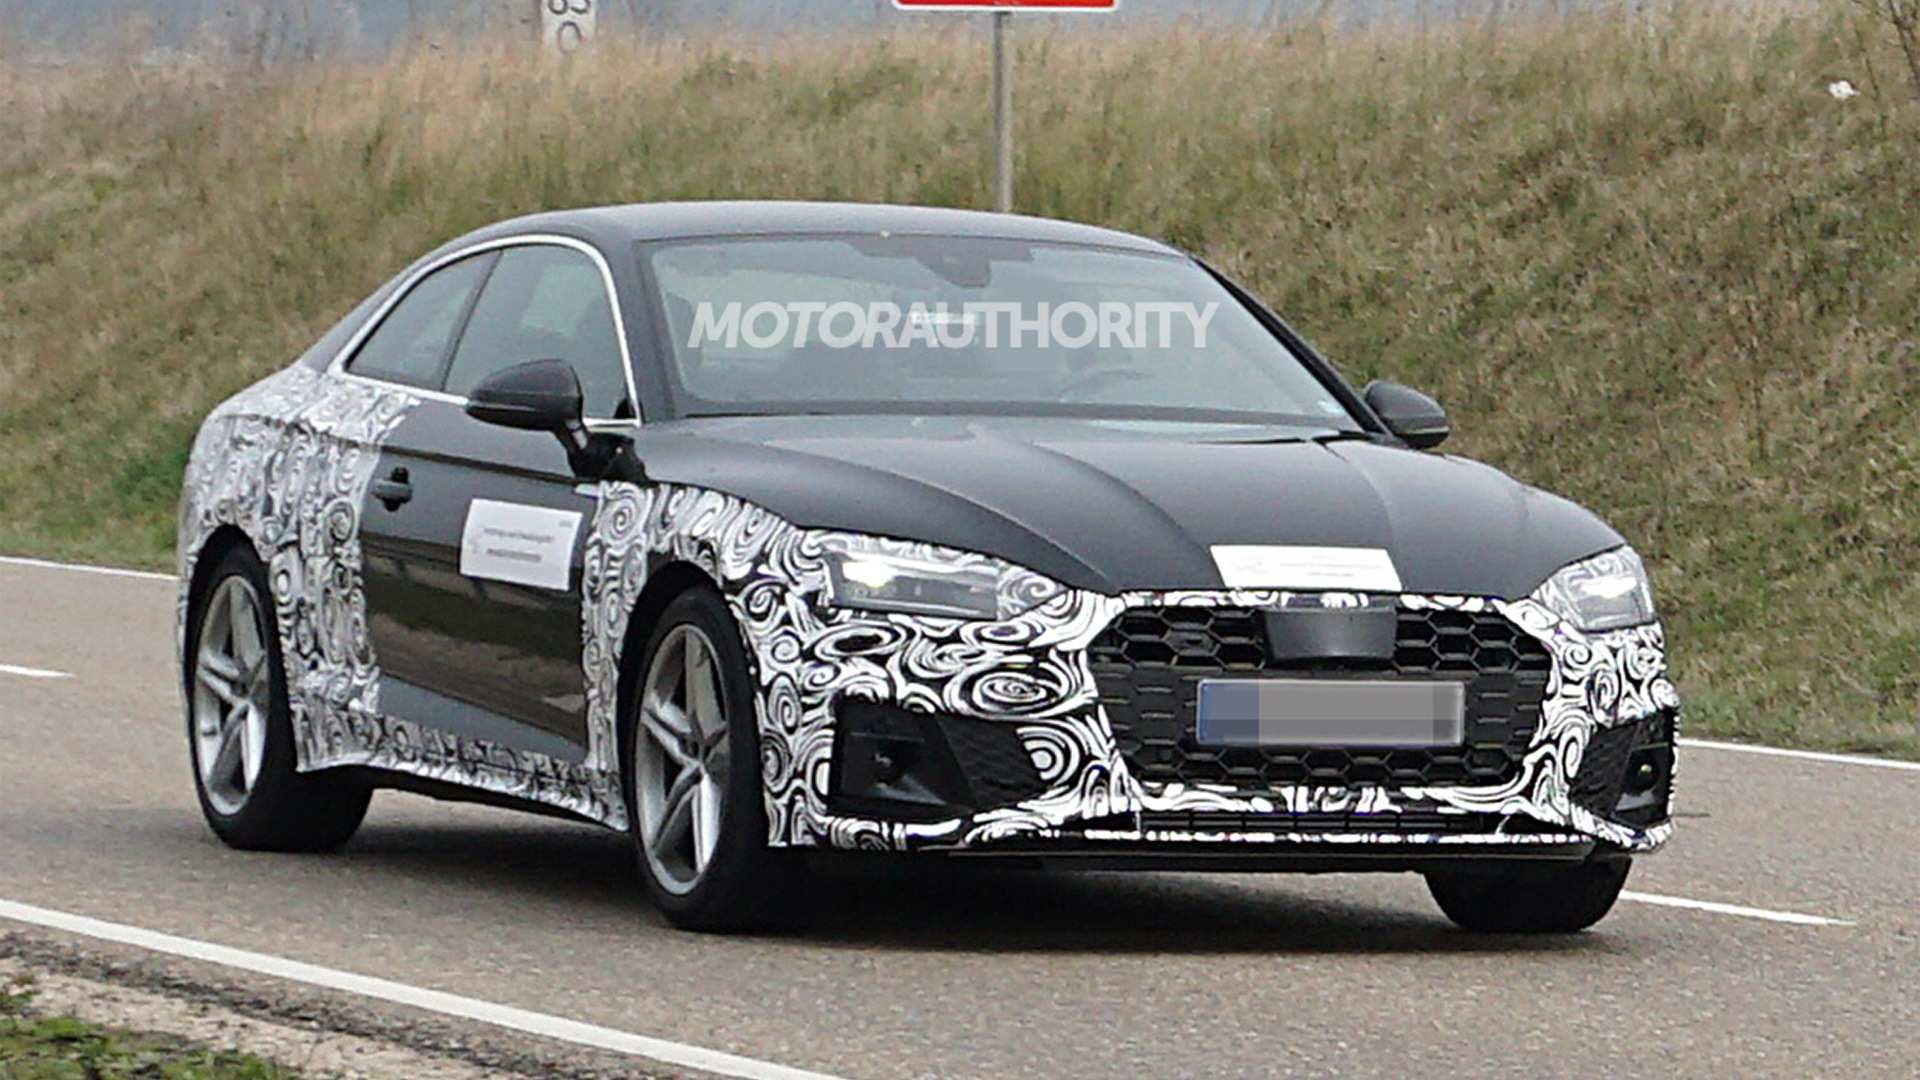 86 A 2020 Audi A5s Price And Release Date